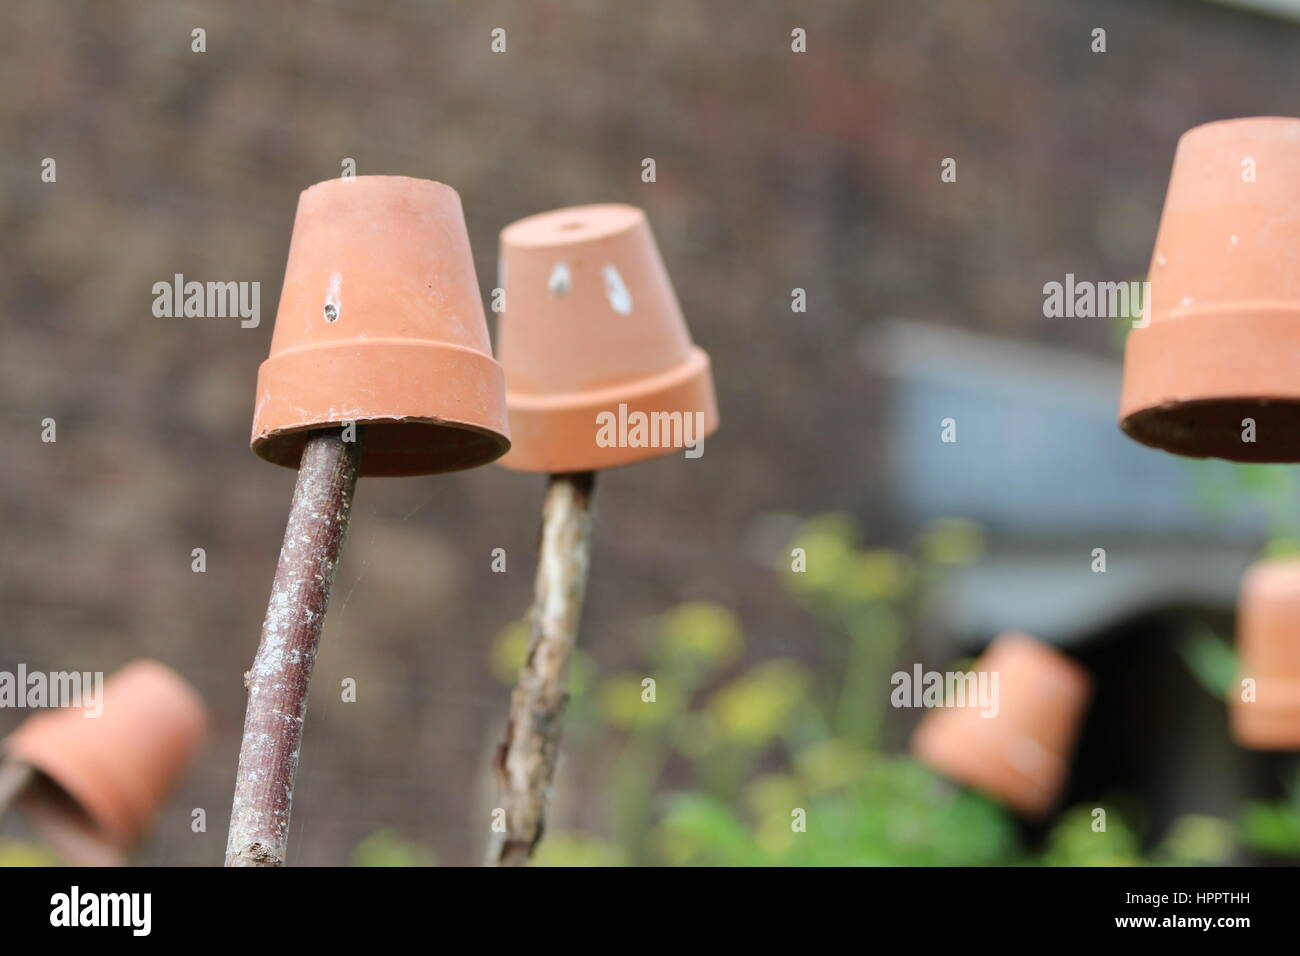 Terracotta plant pots used as a deterrent to keep birds away from plants - Stock Image